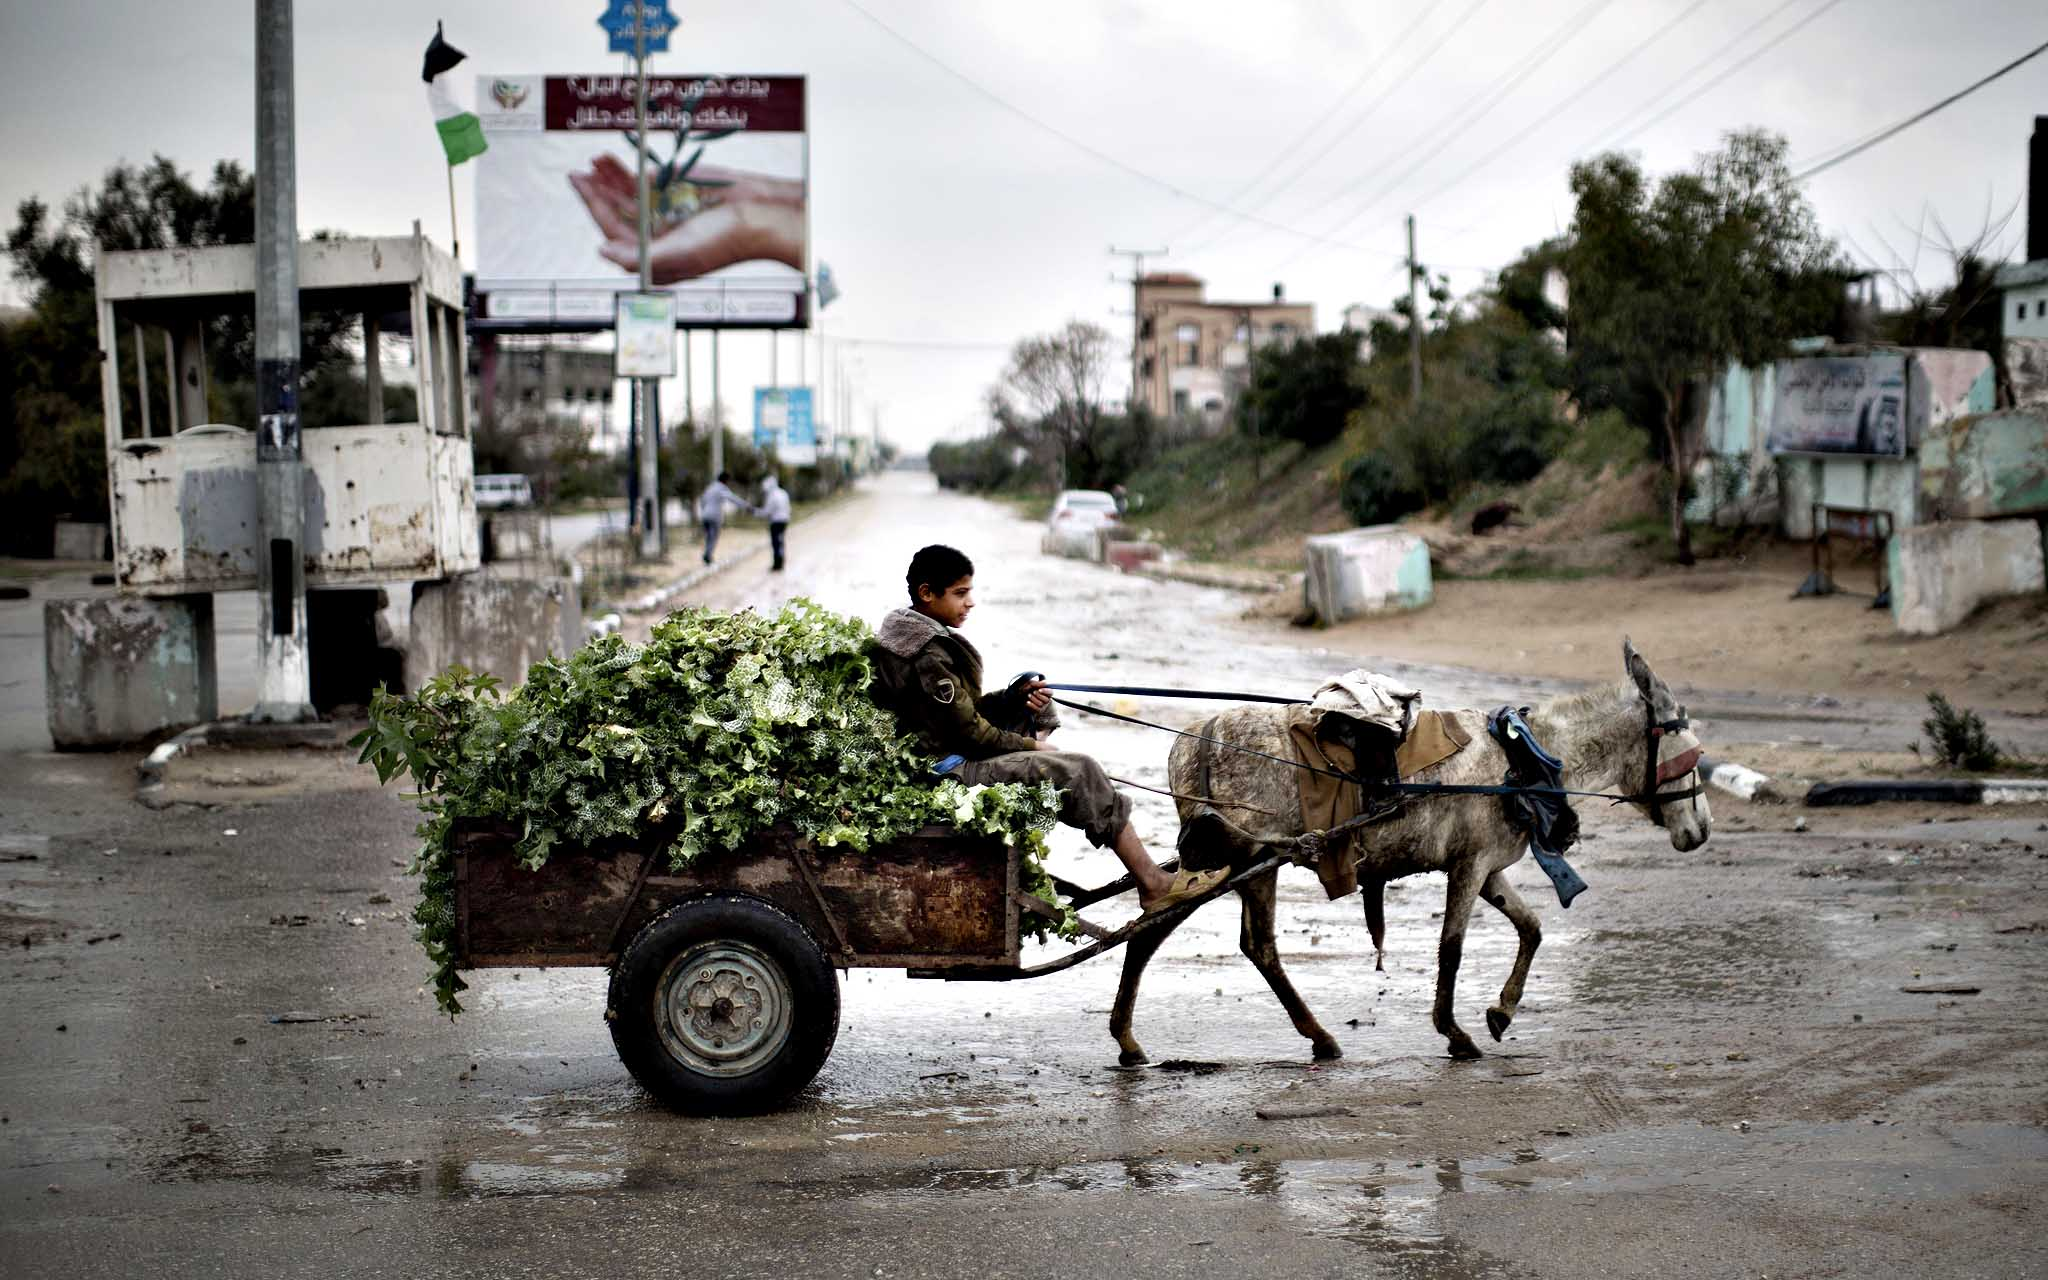 A Palestinian boy rides a donkey cart in Beit Hanun, northern Gaza Strip, on March 13, 2014. Israeli warplanes hit a number of targets in the Gaza Strip overnight in response to heavy Palestinian rocket fire into the Jewish state earlier.